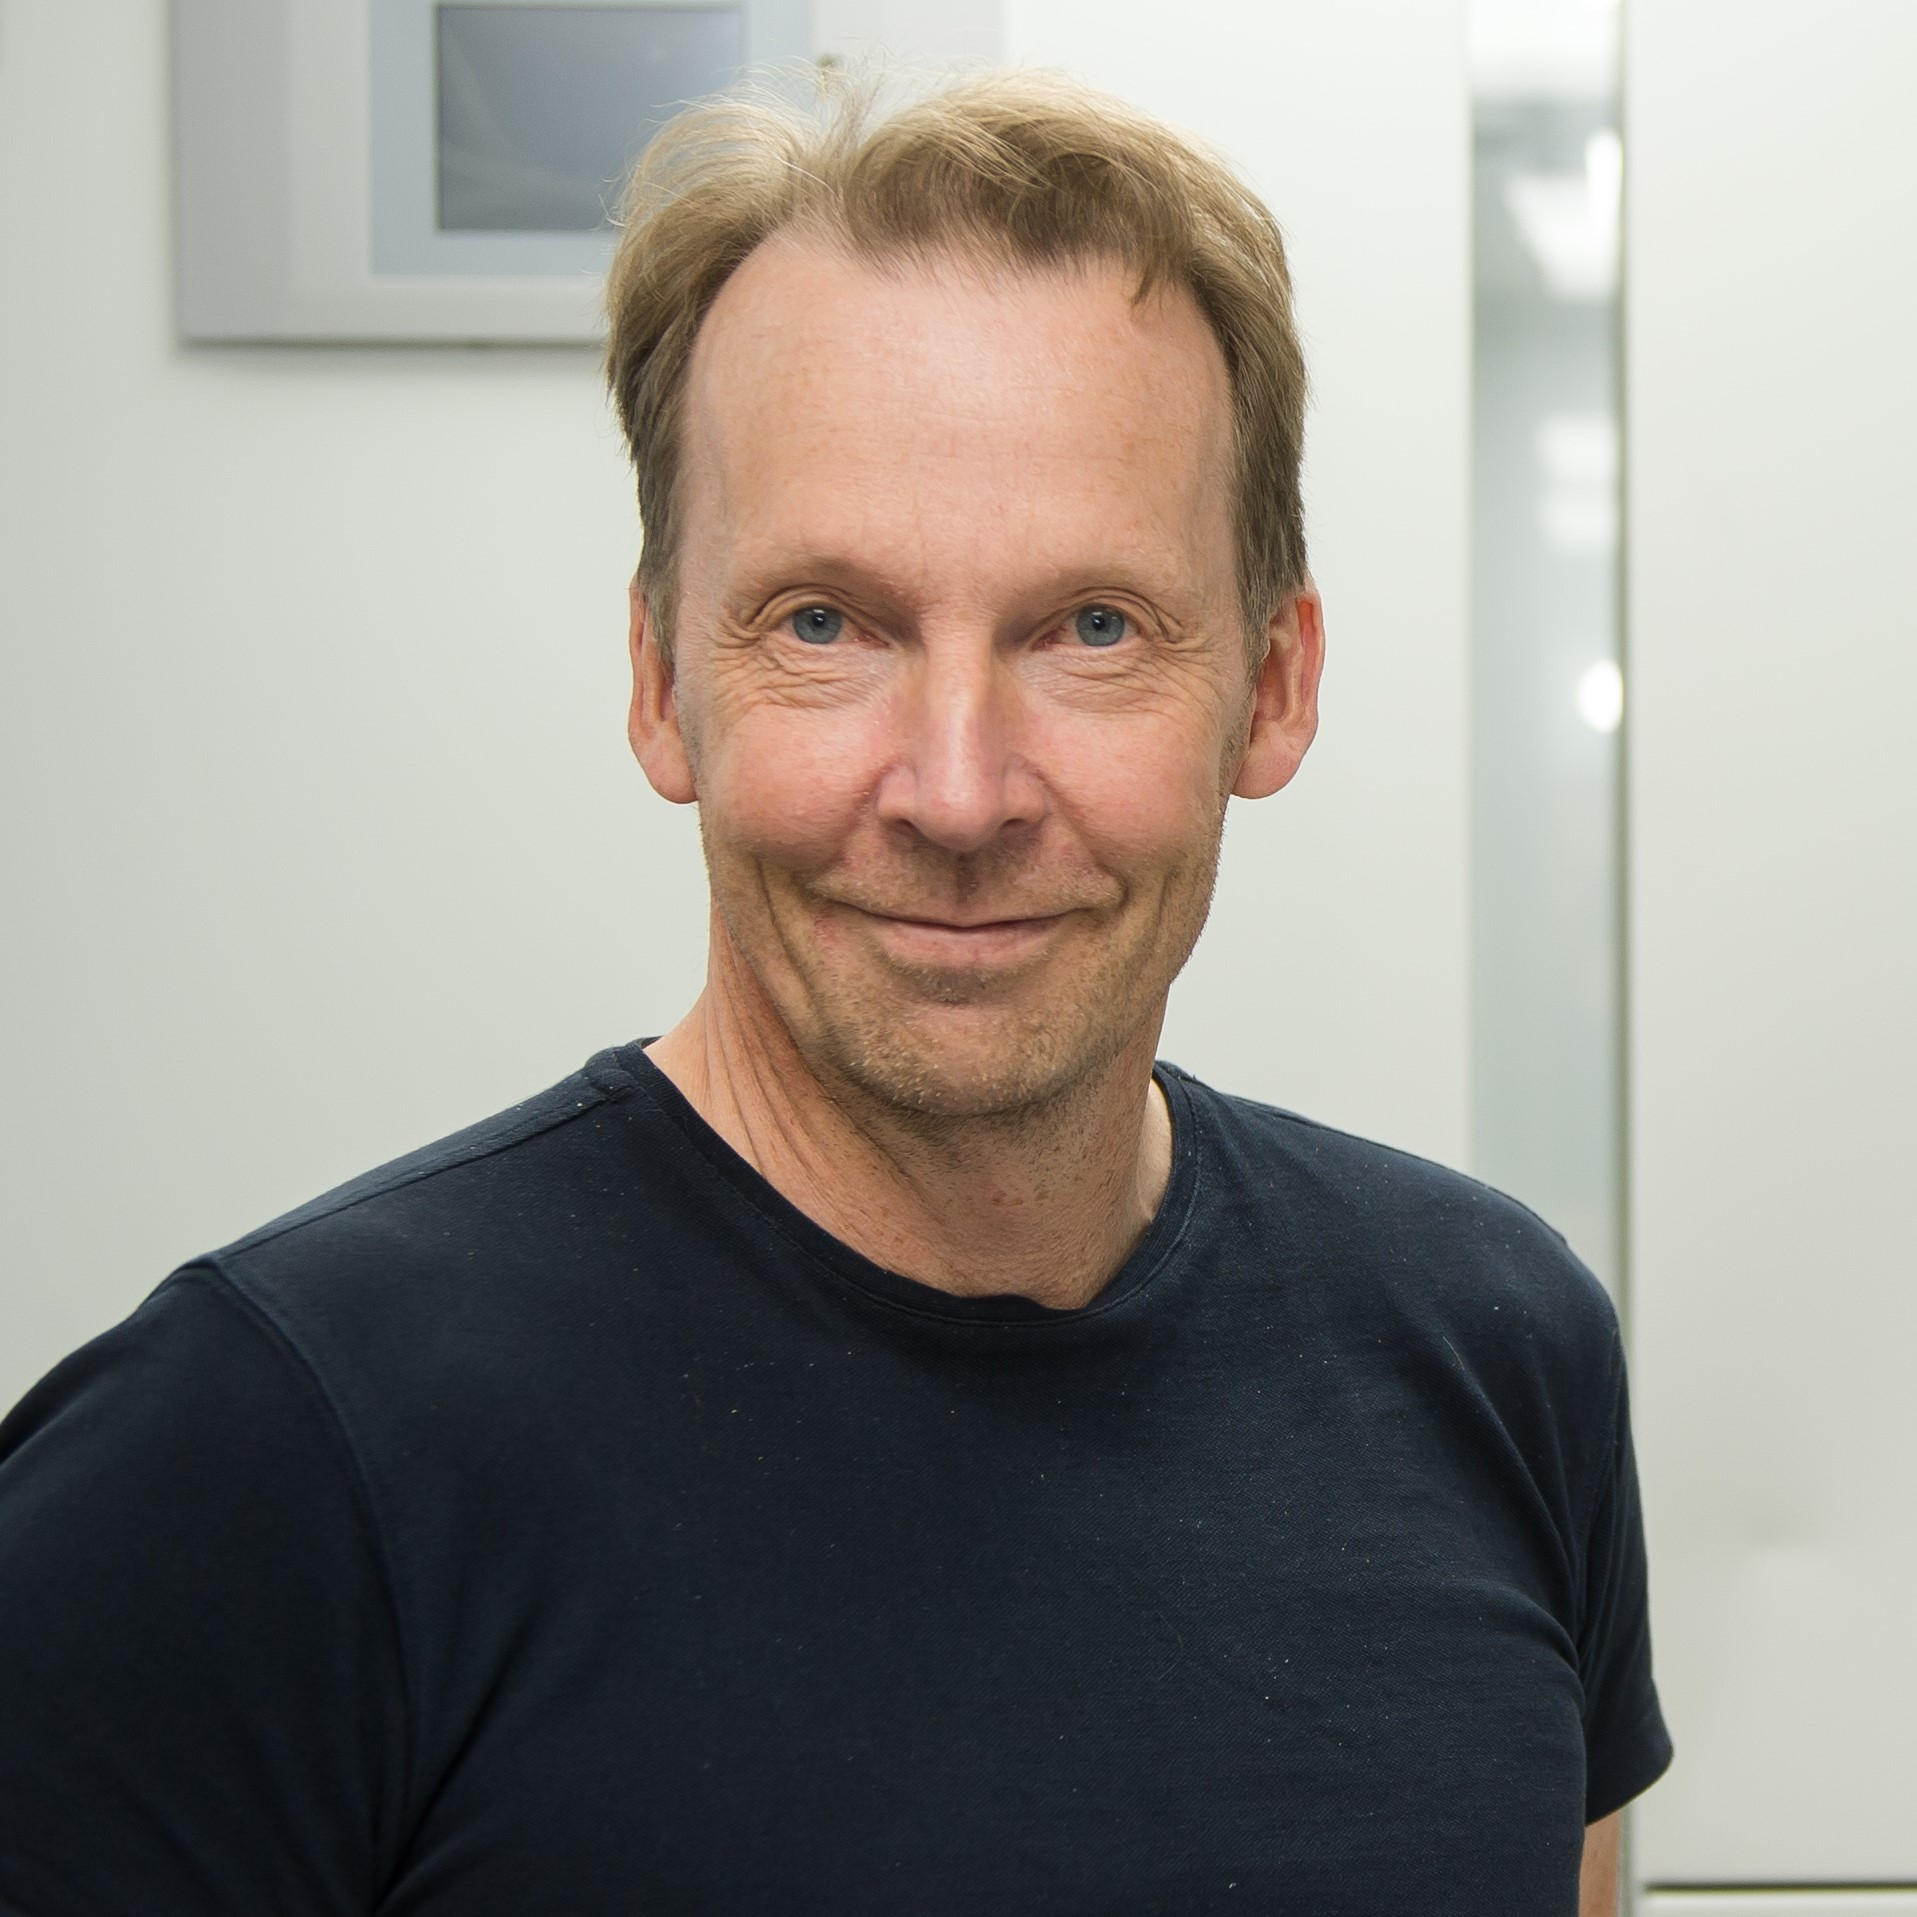 Christer Fåhraeus, PhD